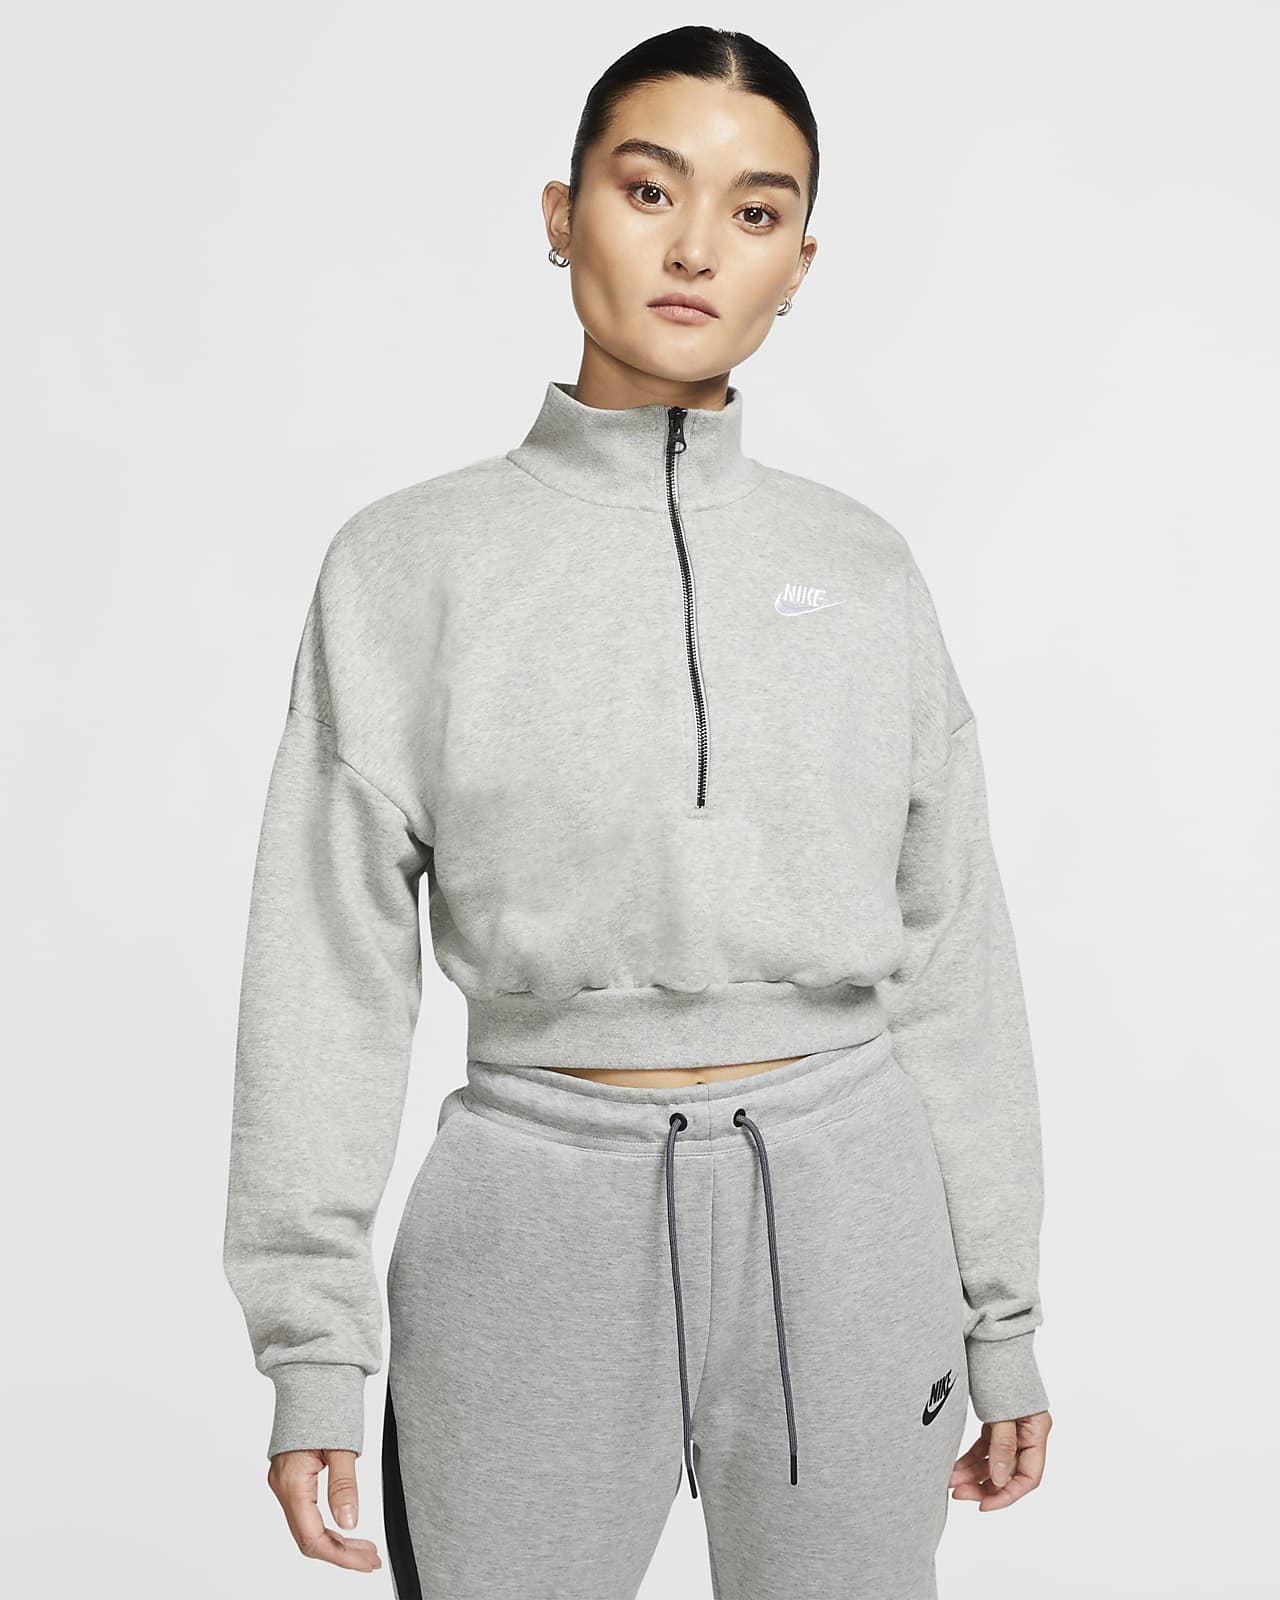 Nike Sportswear Essential Women's Fleece Long-Sleeve Crop Top